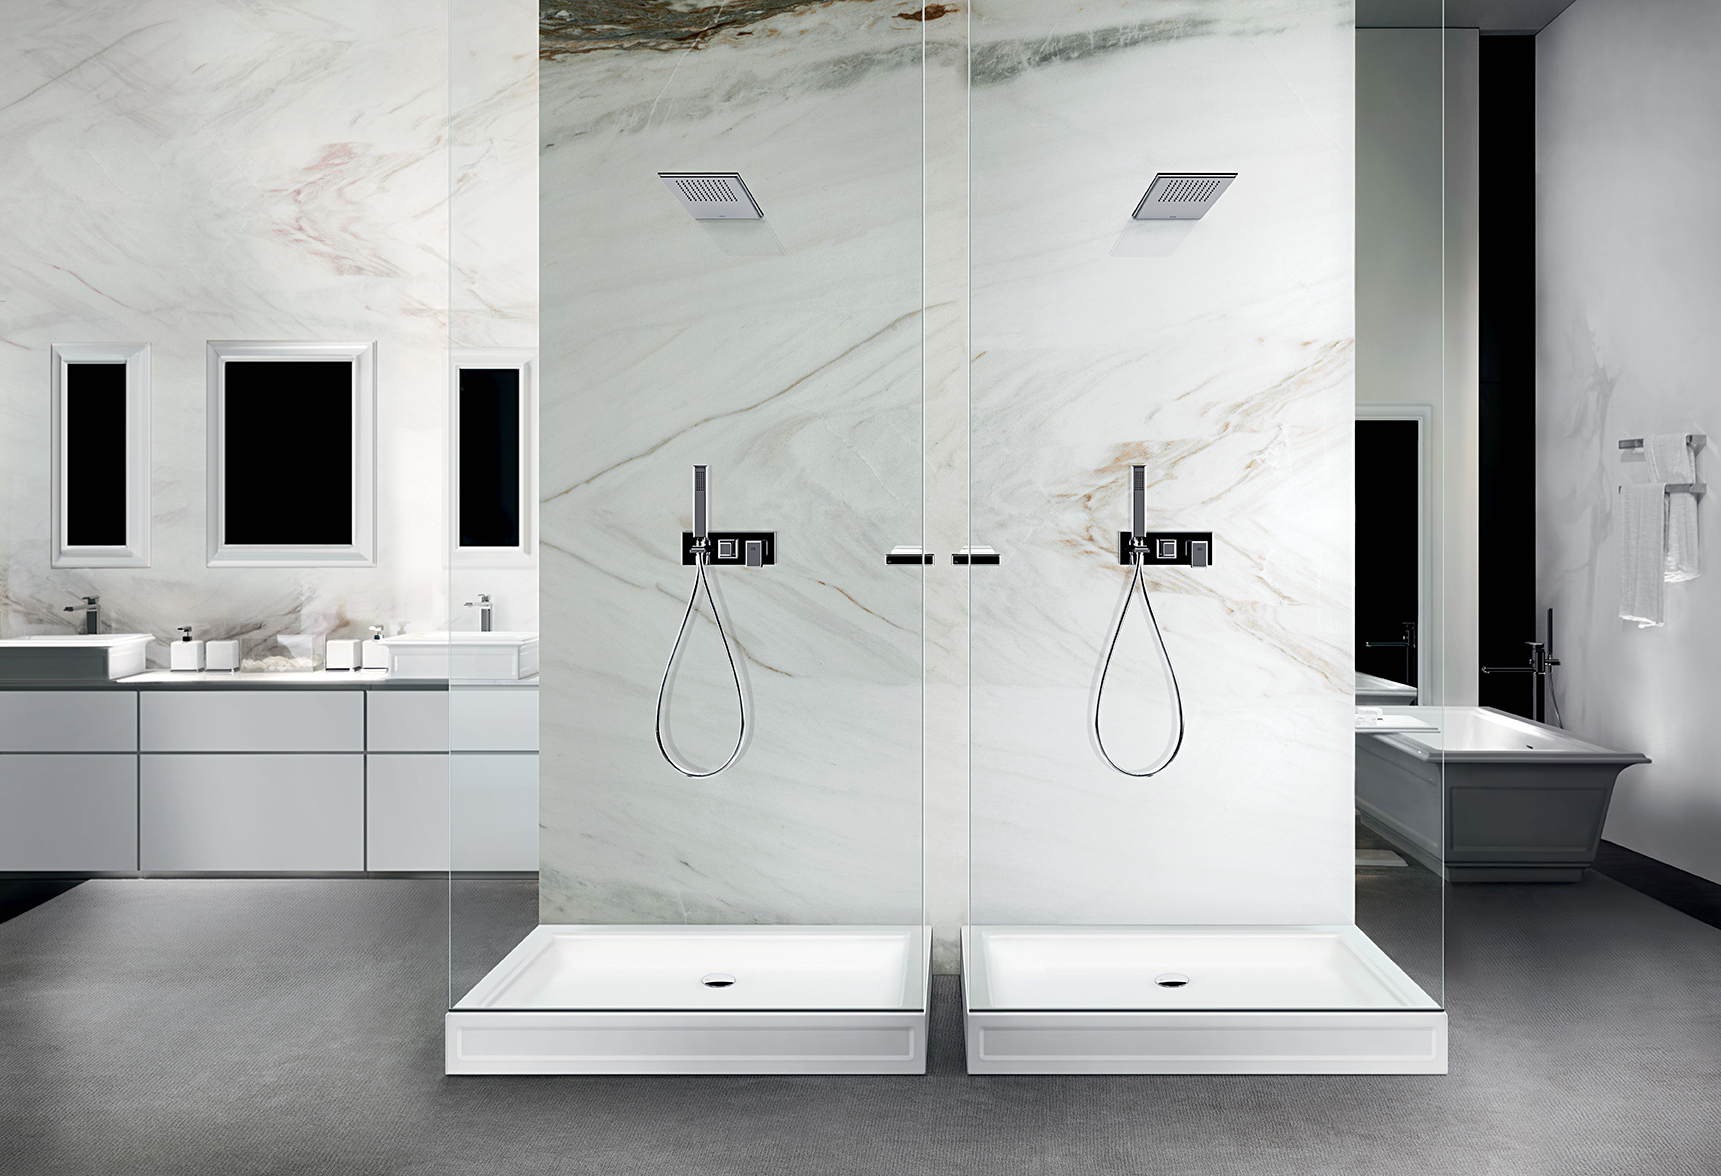 Images For Bathroom Tiles : Fascino Gessi full bath with showers from www.tehroony.com size 1721 x 1176 jpeg 1026kB